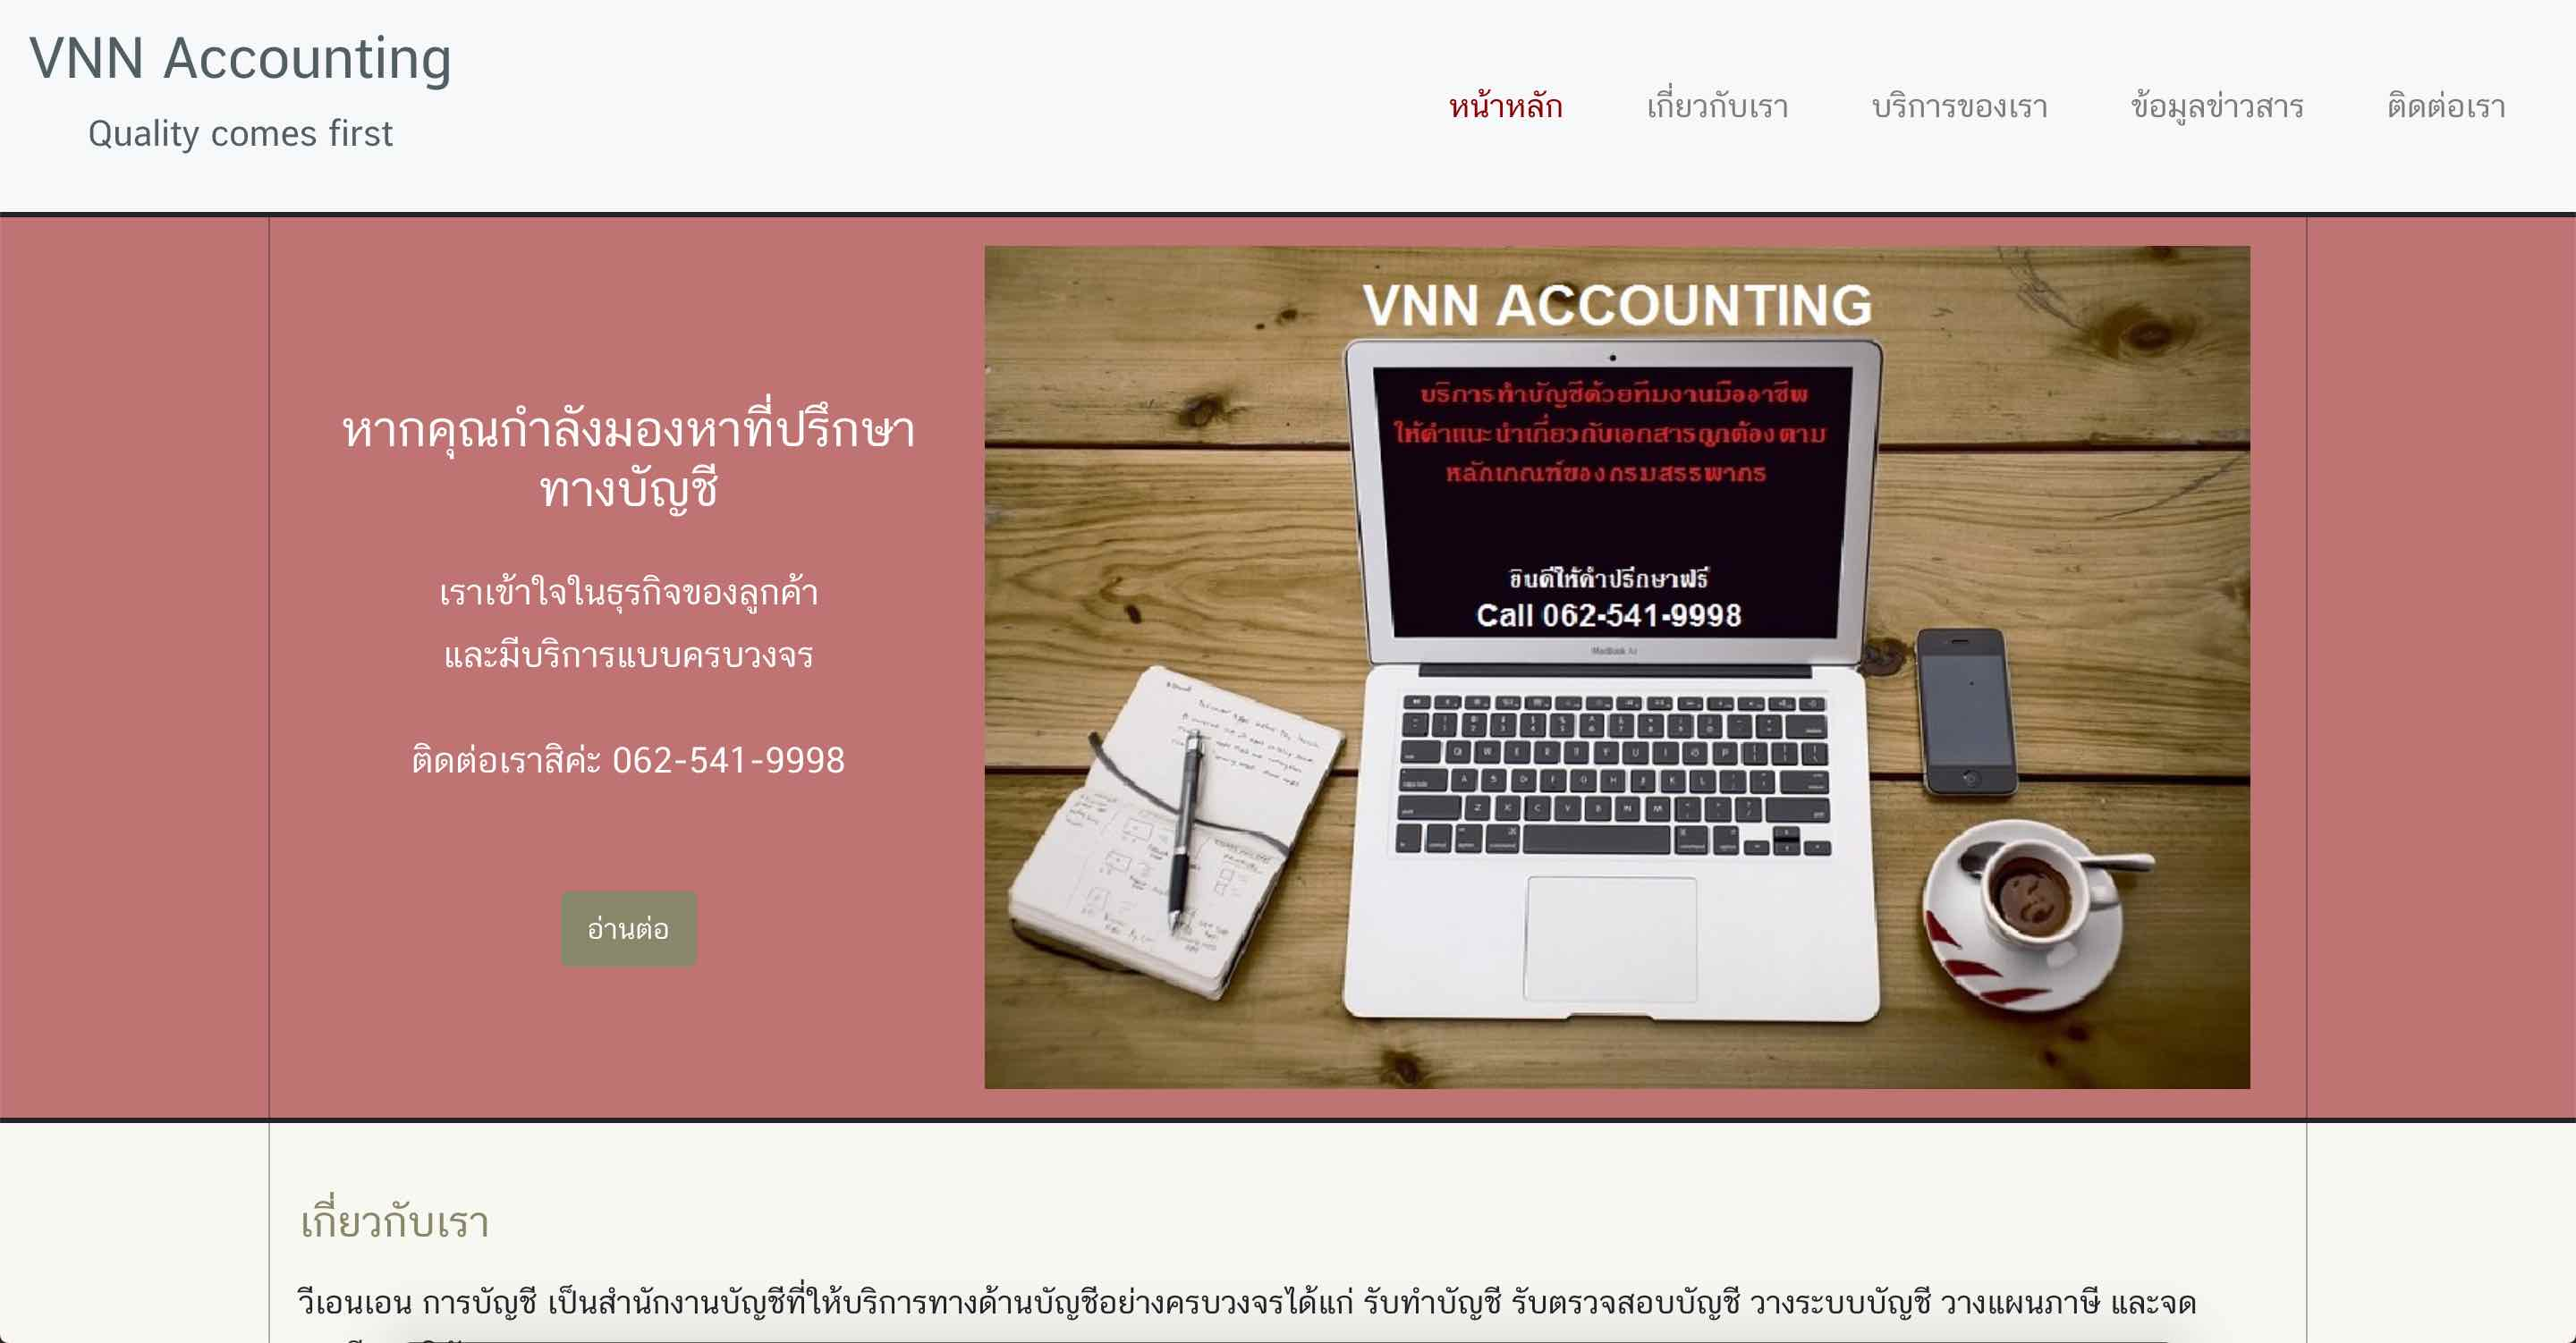 vnnaccounting.com website